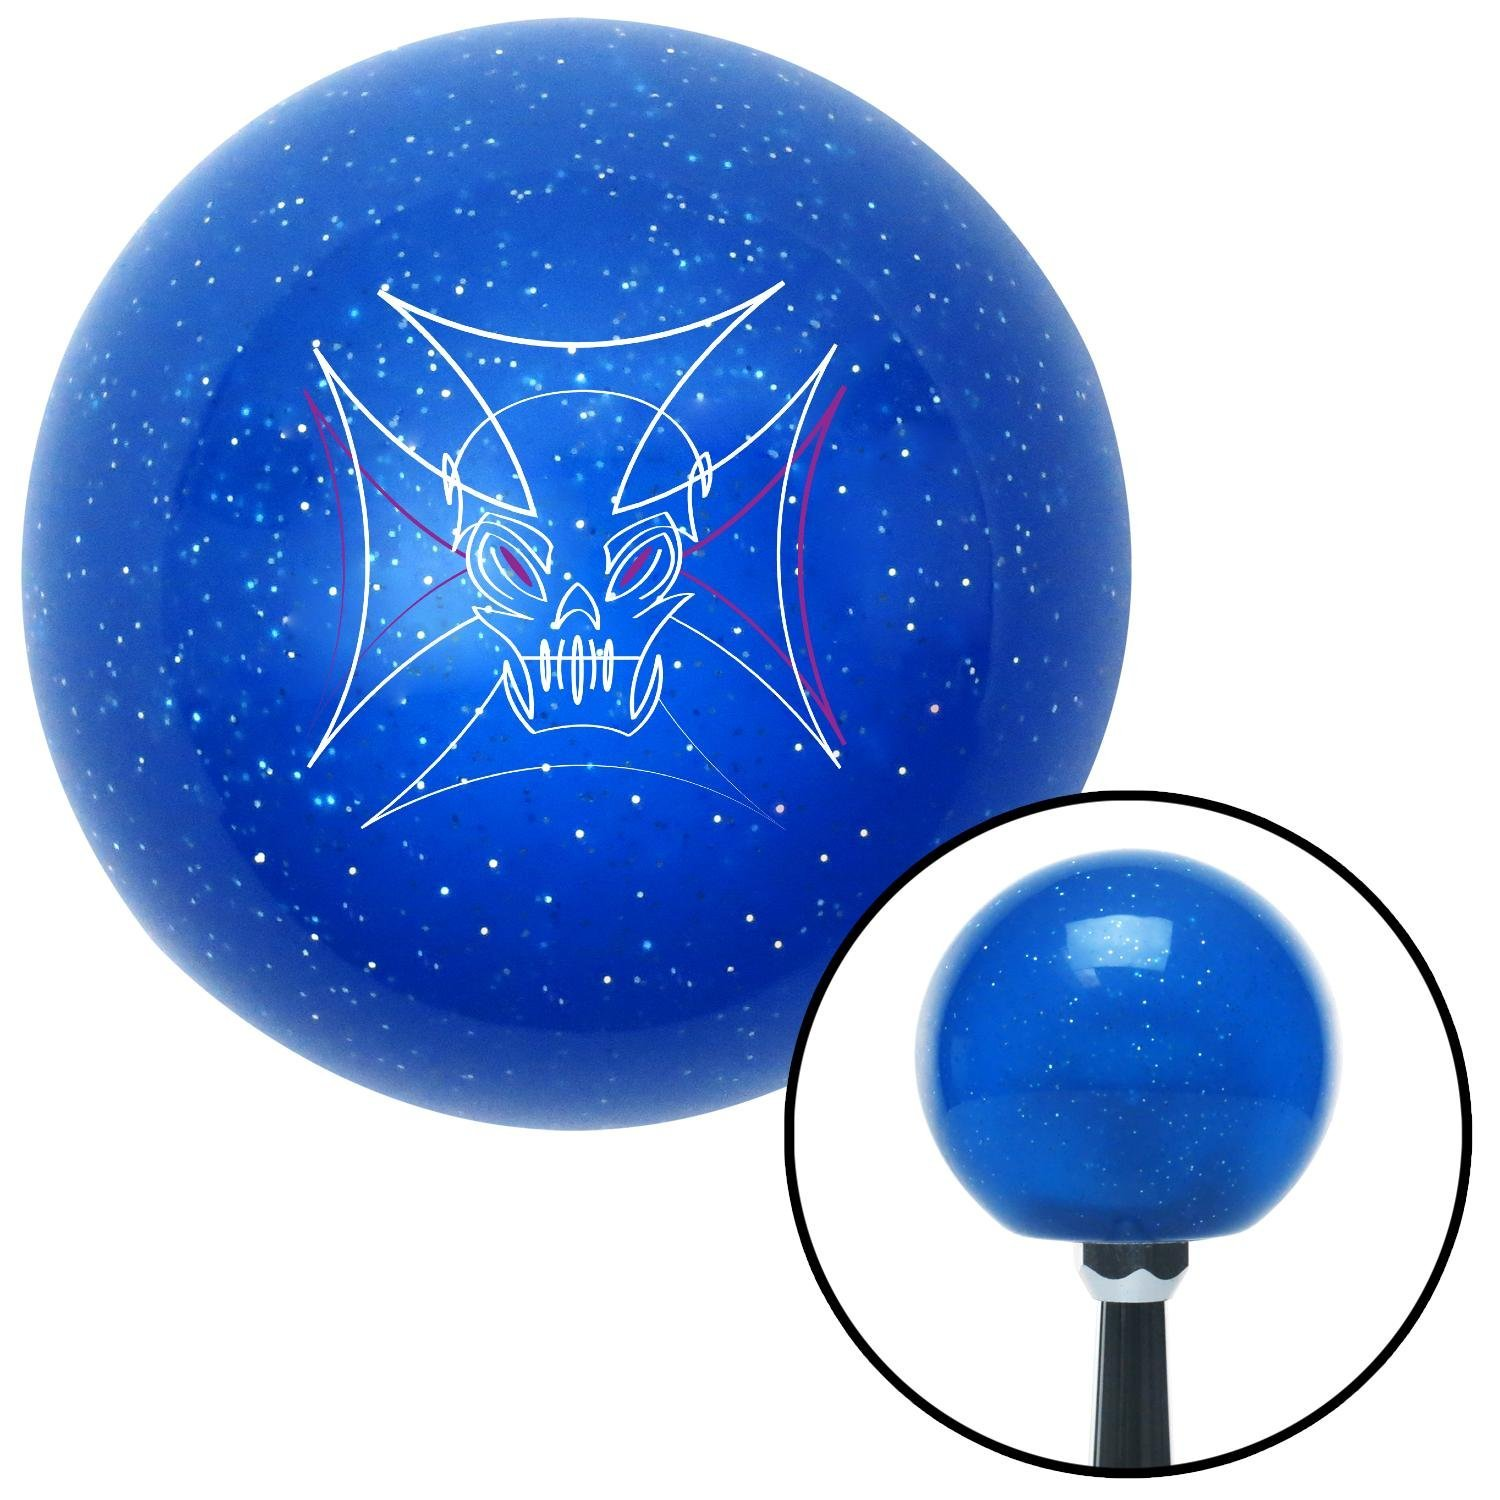 American Shifter 150712 Blue Metal Flake Shift Knob with M16 x 1.5 Insert White and Purple Pinstripe Skull 2